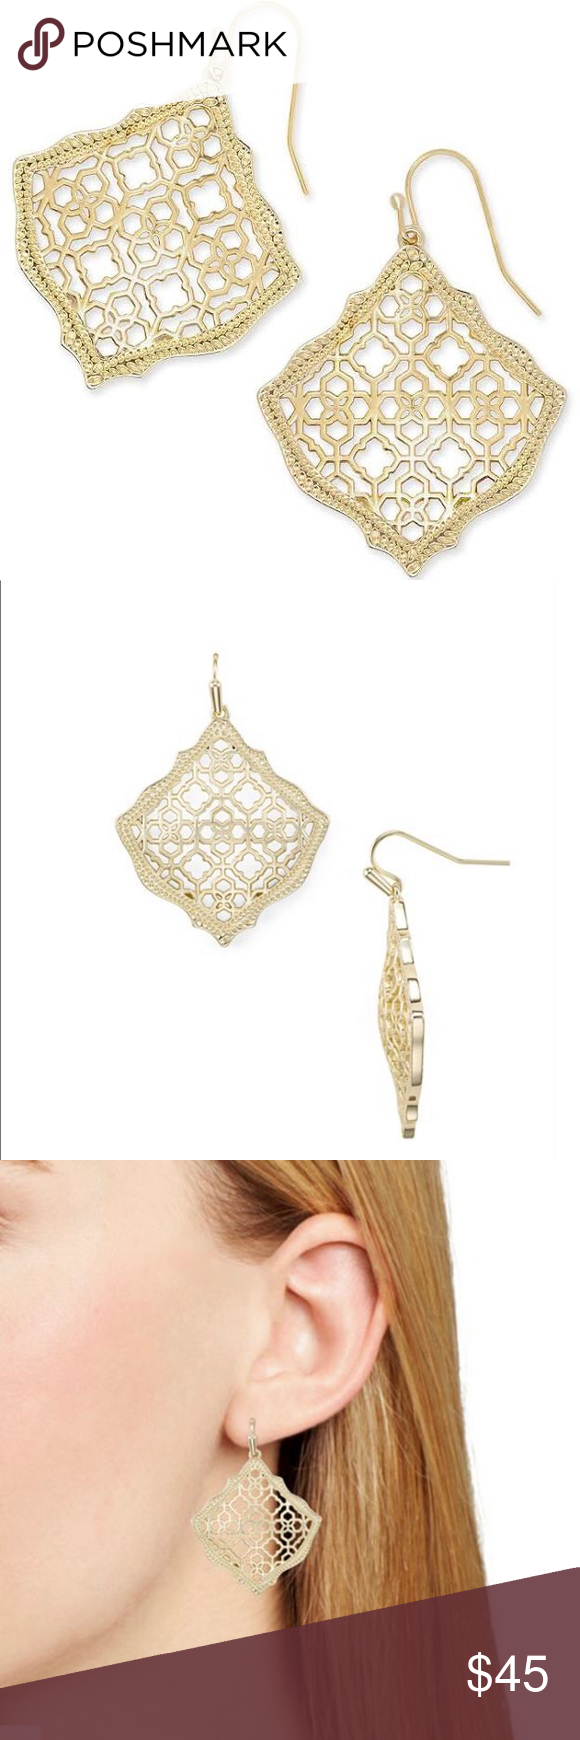 b262eac2eeb36f Kendra Scott Kirsten Drop Earrings in Filigree Brand new & factory sealed  in box! Authentic! Shade is Gold Filigree! With a gentle sloping  silhouette, ...